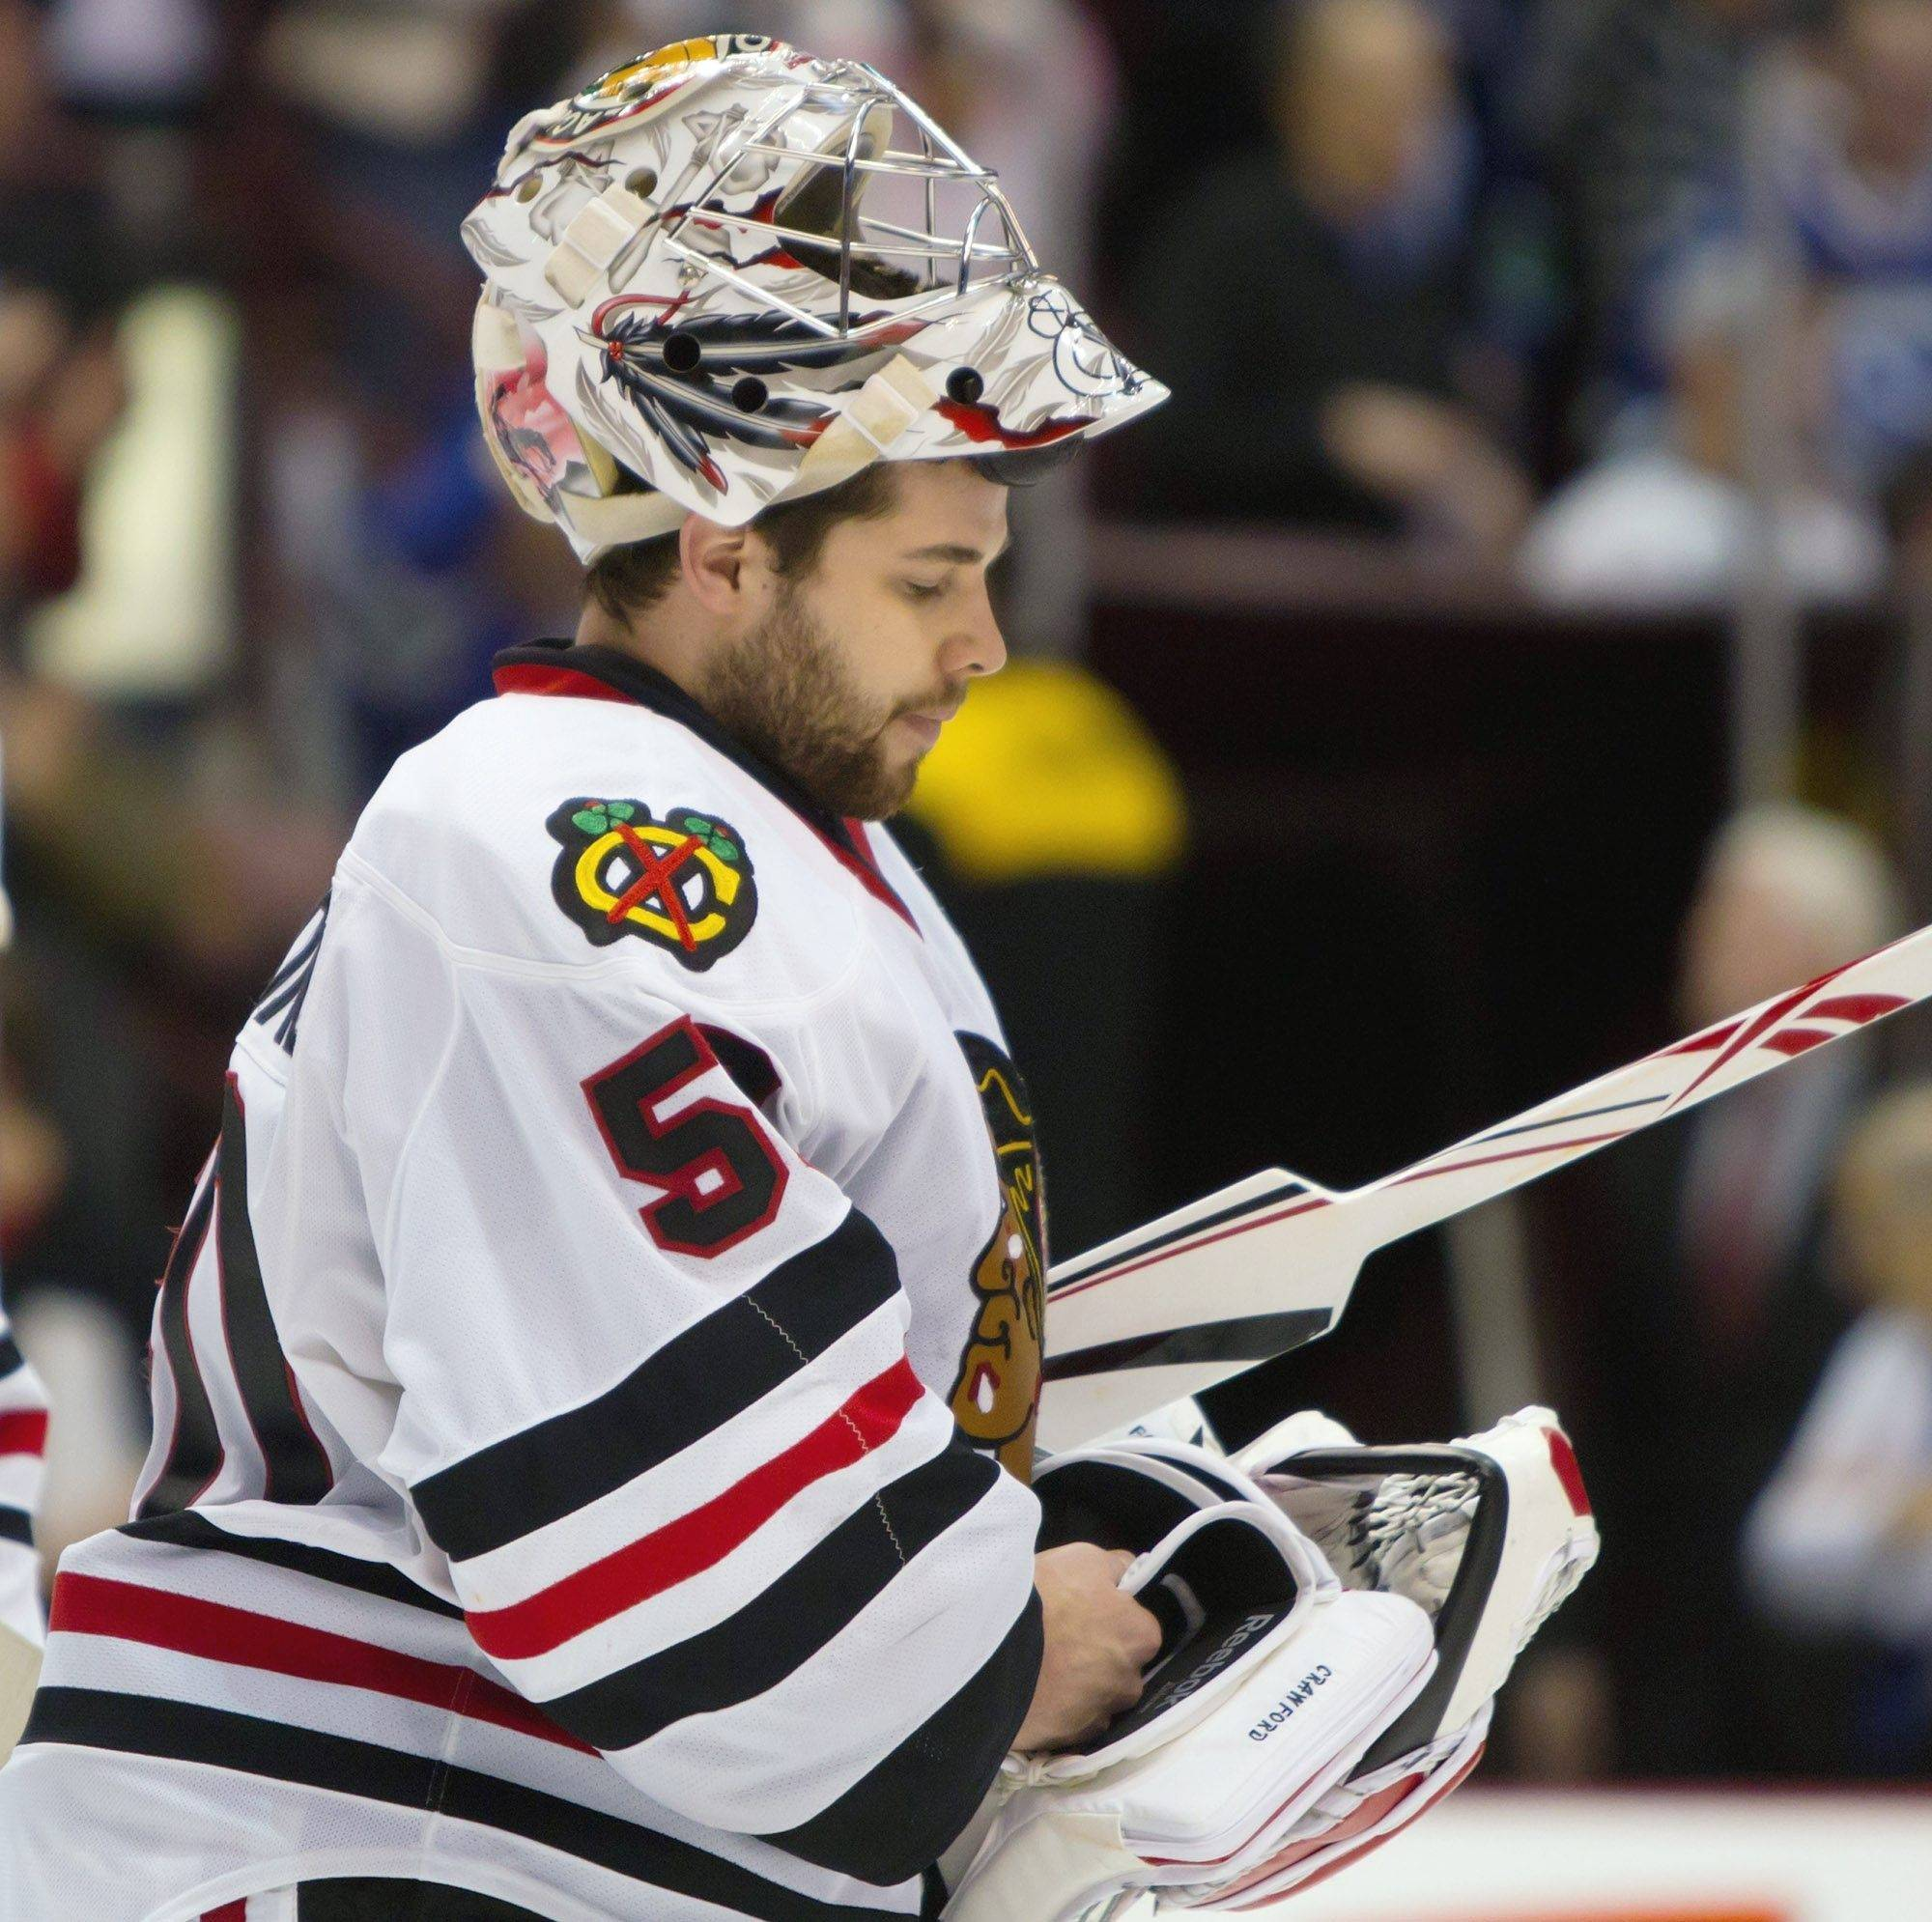 A top priority for the Hawks: Get restricted free-agent goalie Corey Crawford signed.